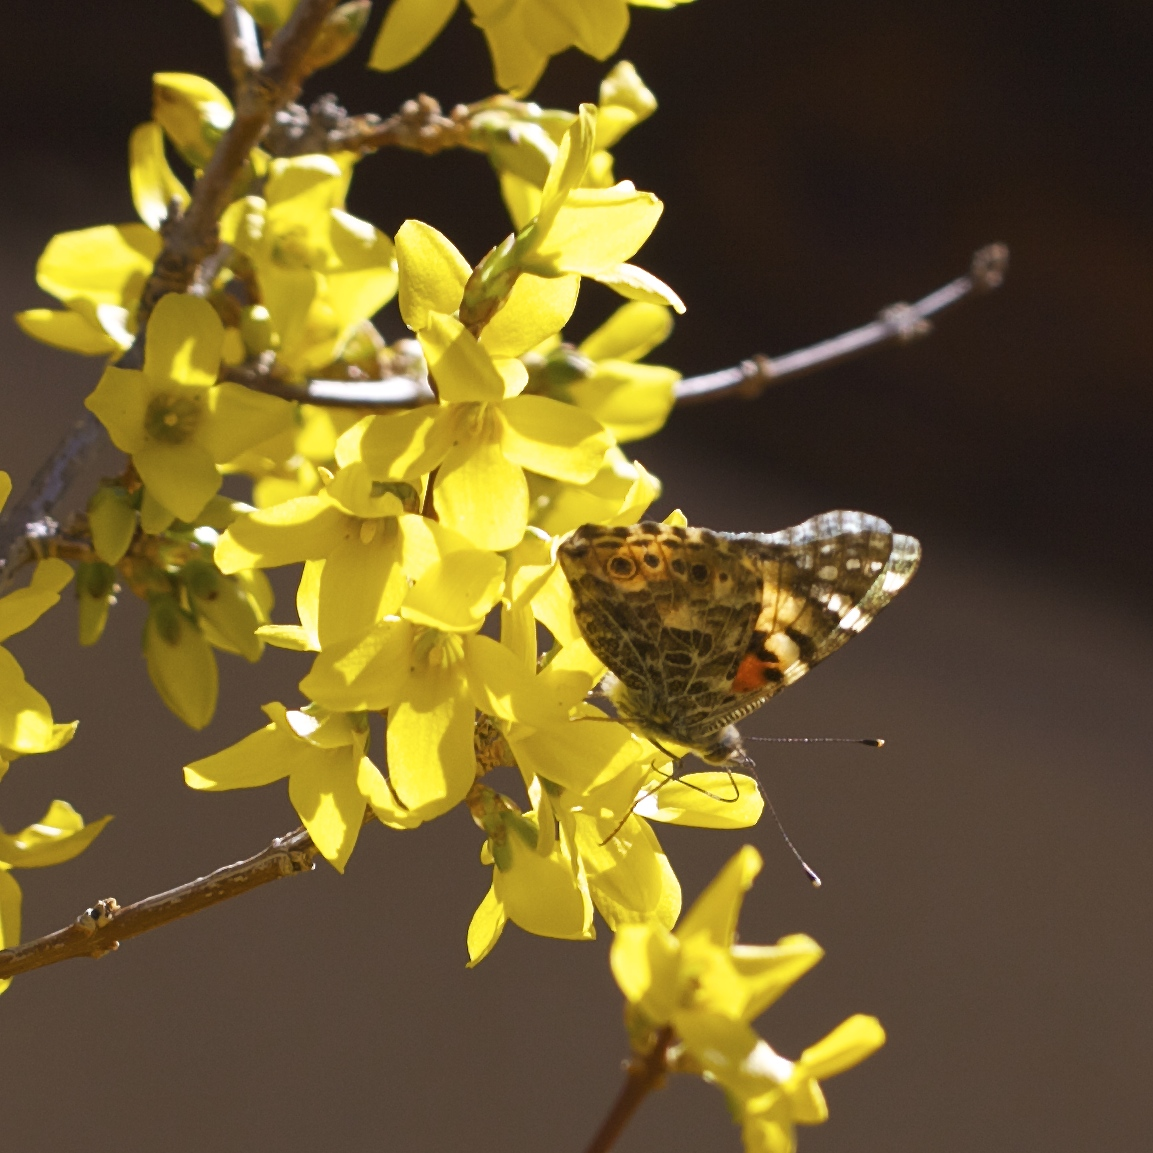 I remember last year forsythia covered in snow. This spring how it glows brilliant yellow and grows tall in full bloom.